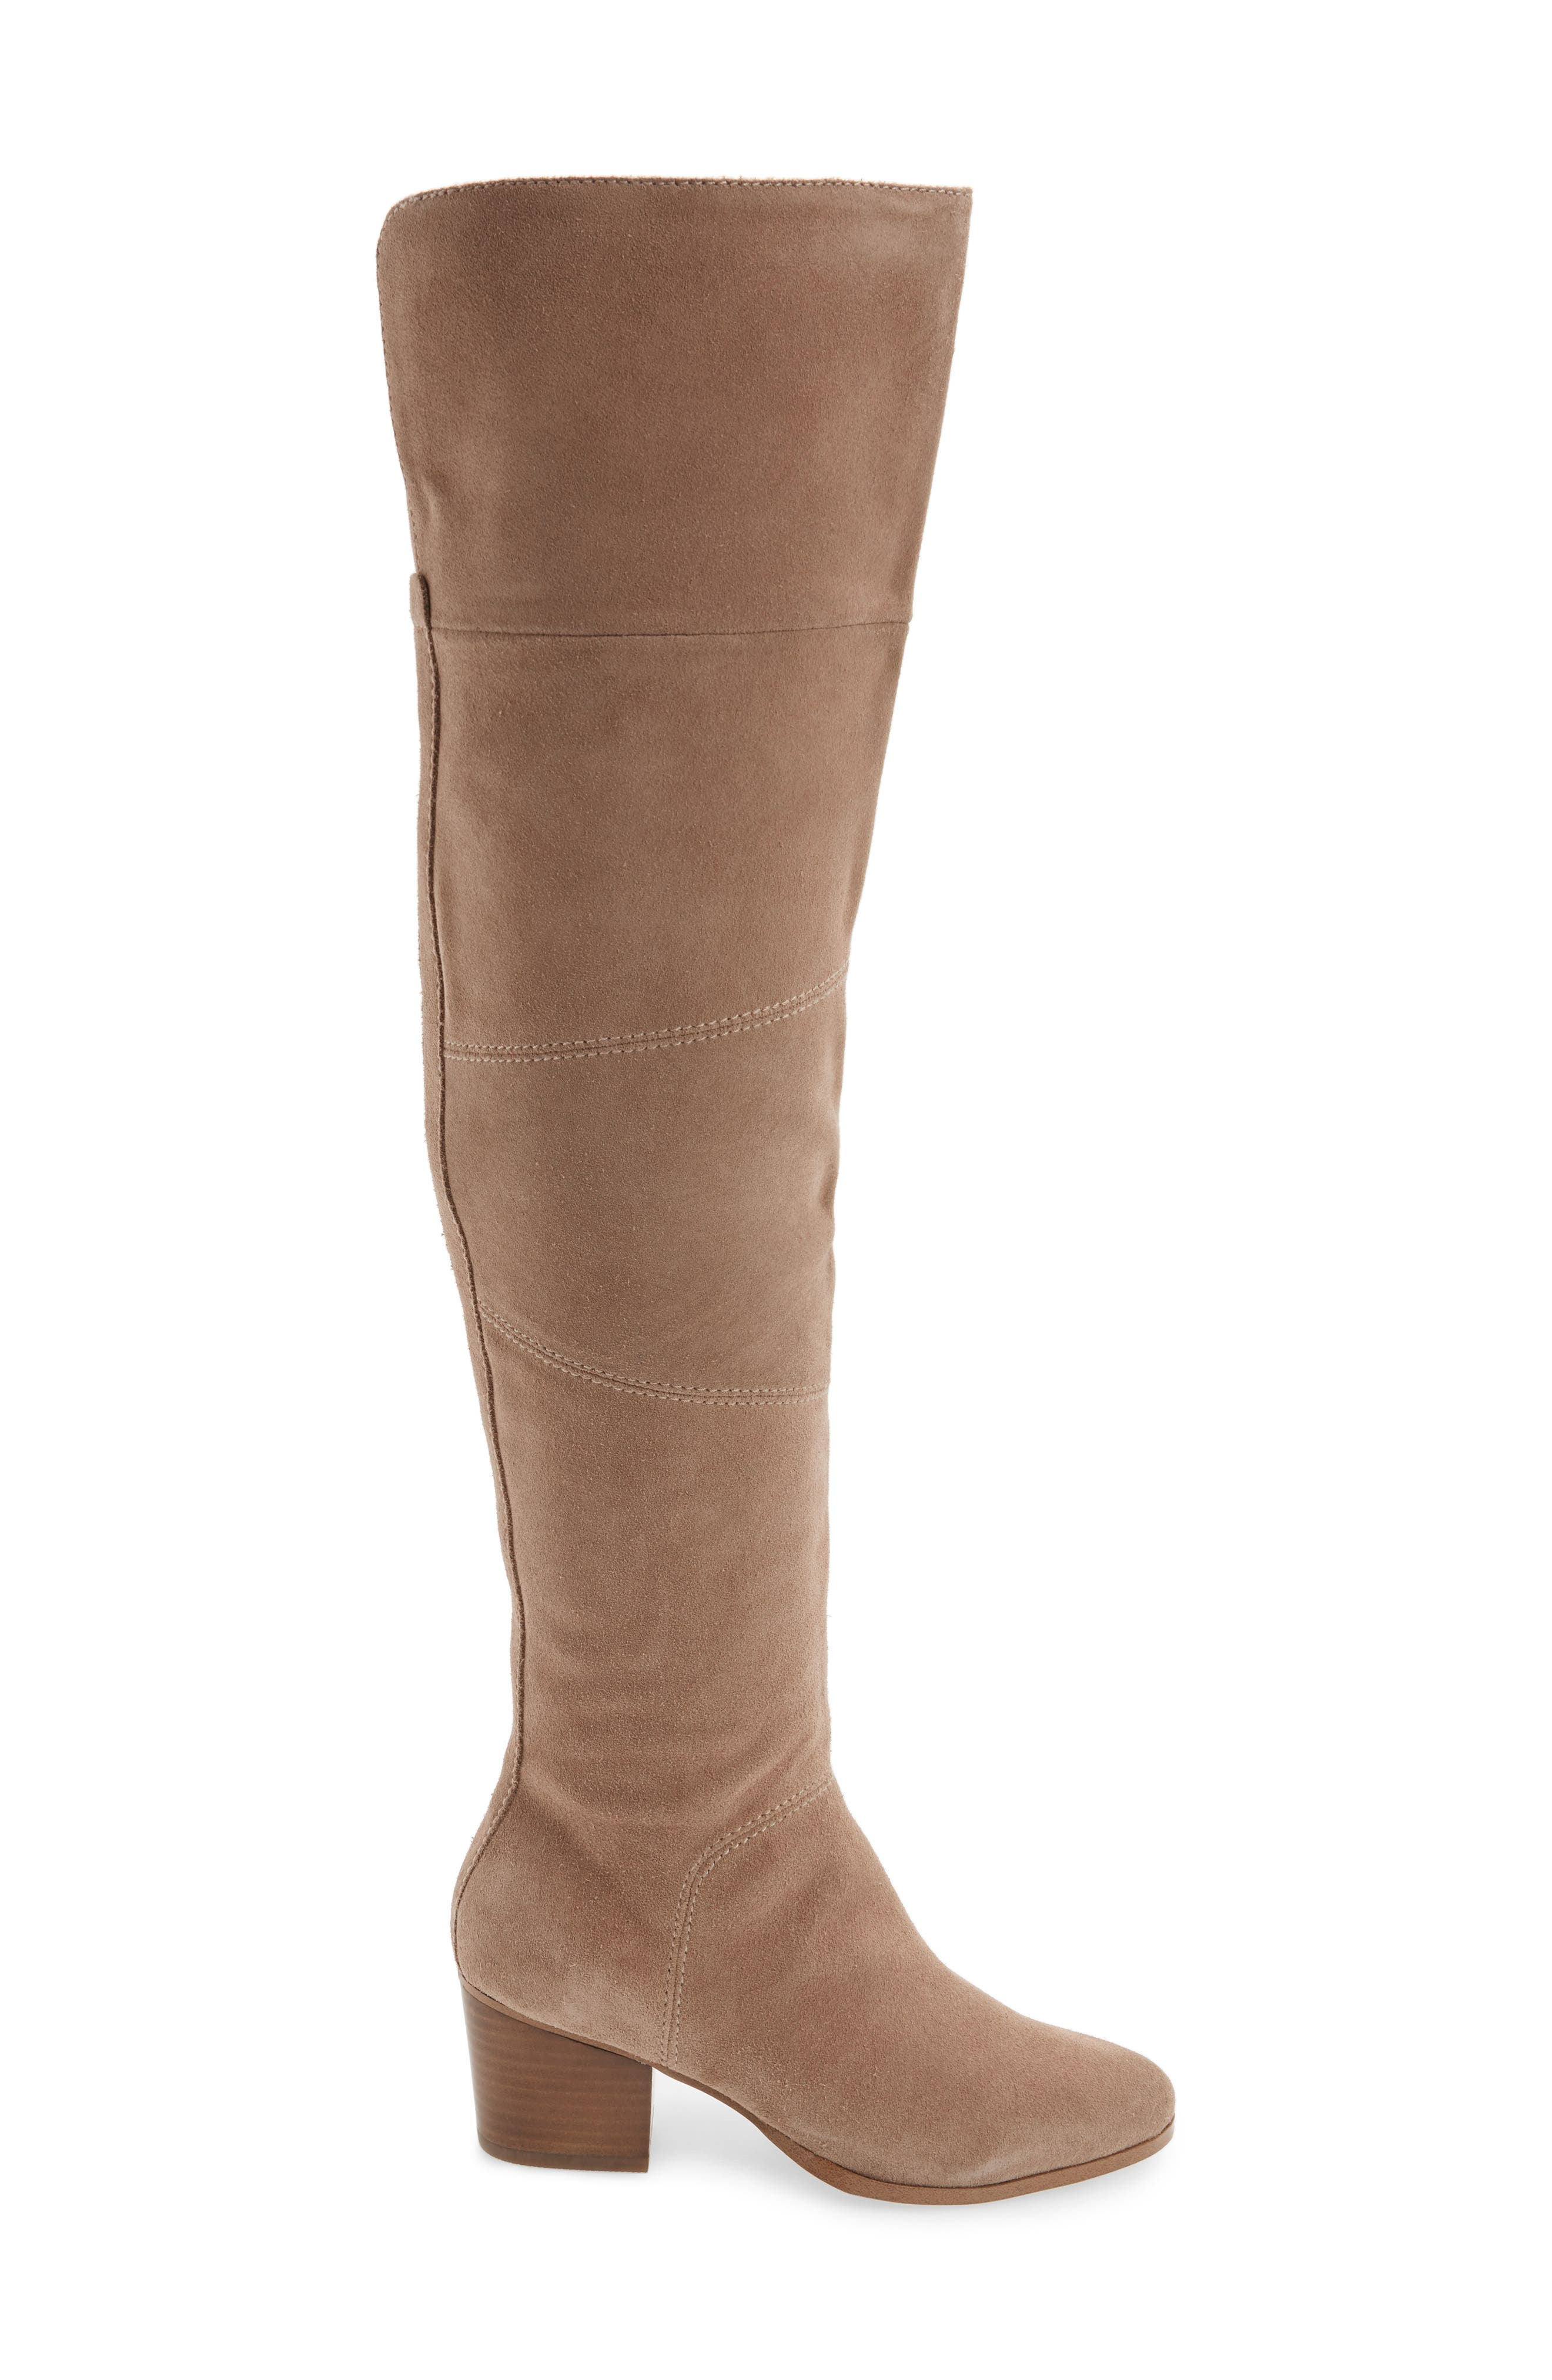 Alternate Image 3  - Sole Society Melbourne Over the Knee Boot (Women)